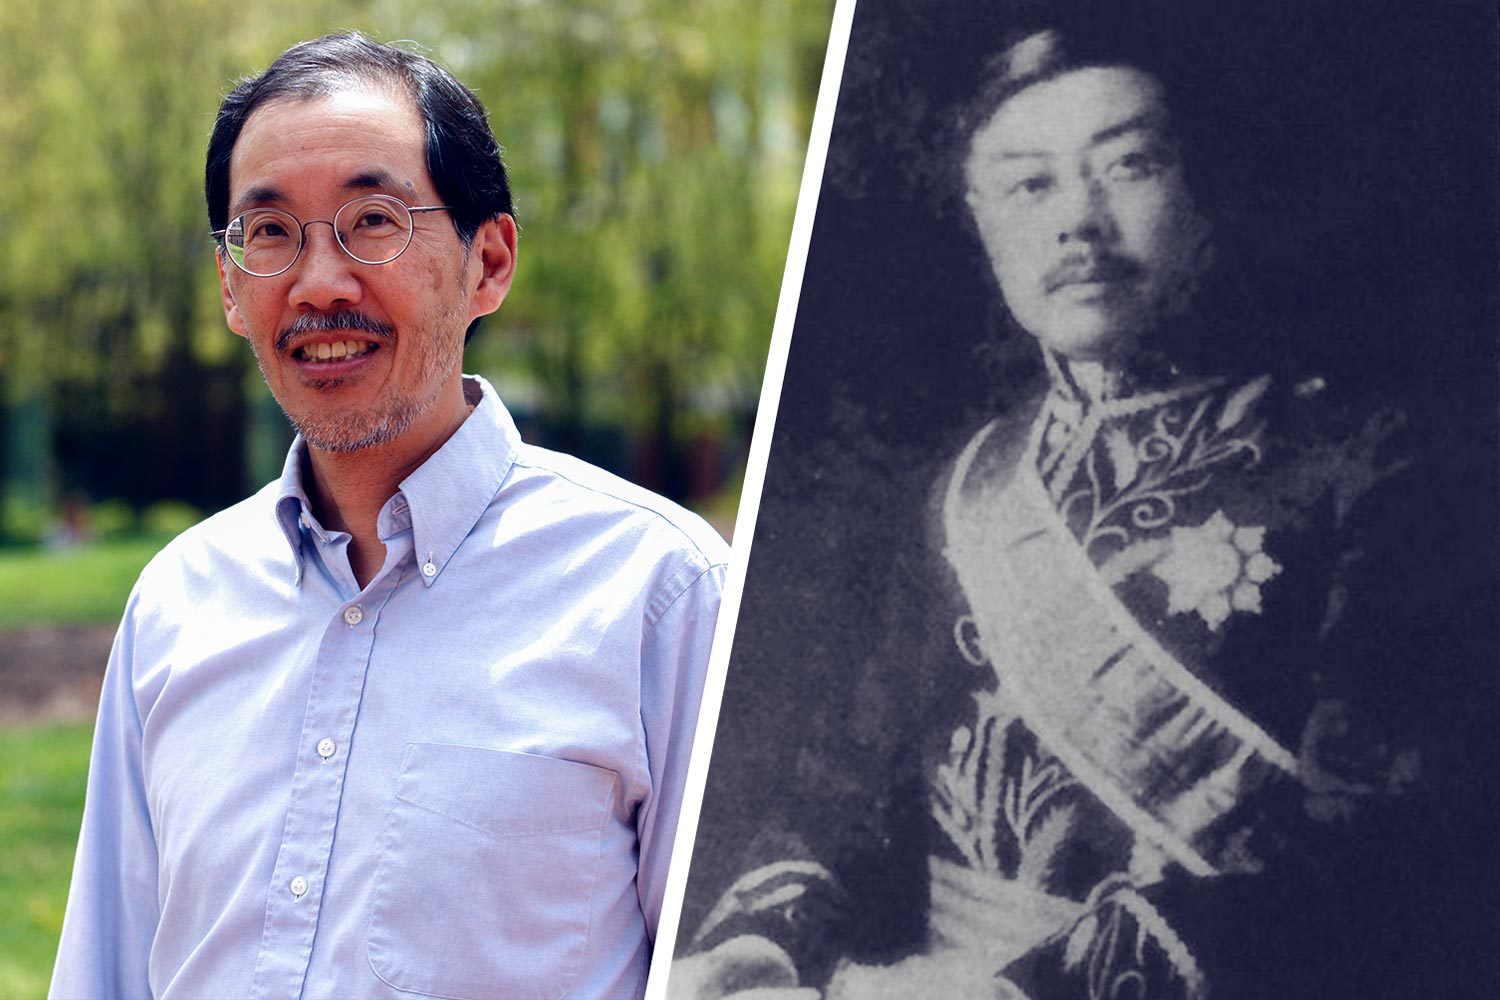 Professor George Yin recently learned he is related to W.W. Yen, aka Yan Huiqing, the late Chinese leader and former UVA student.